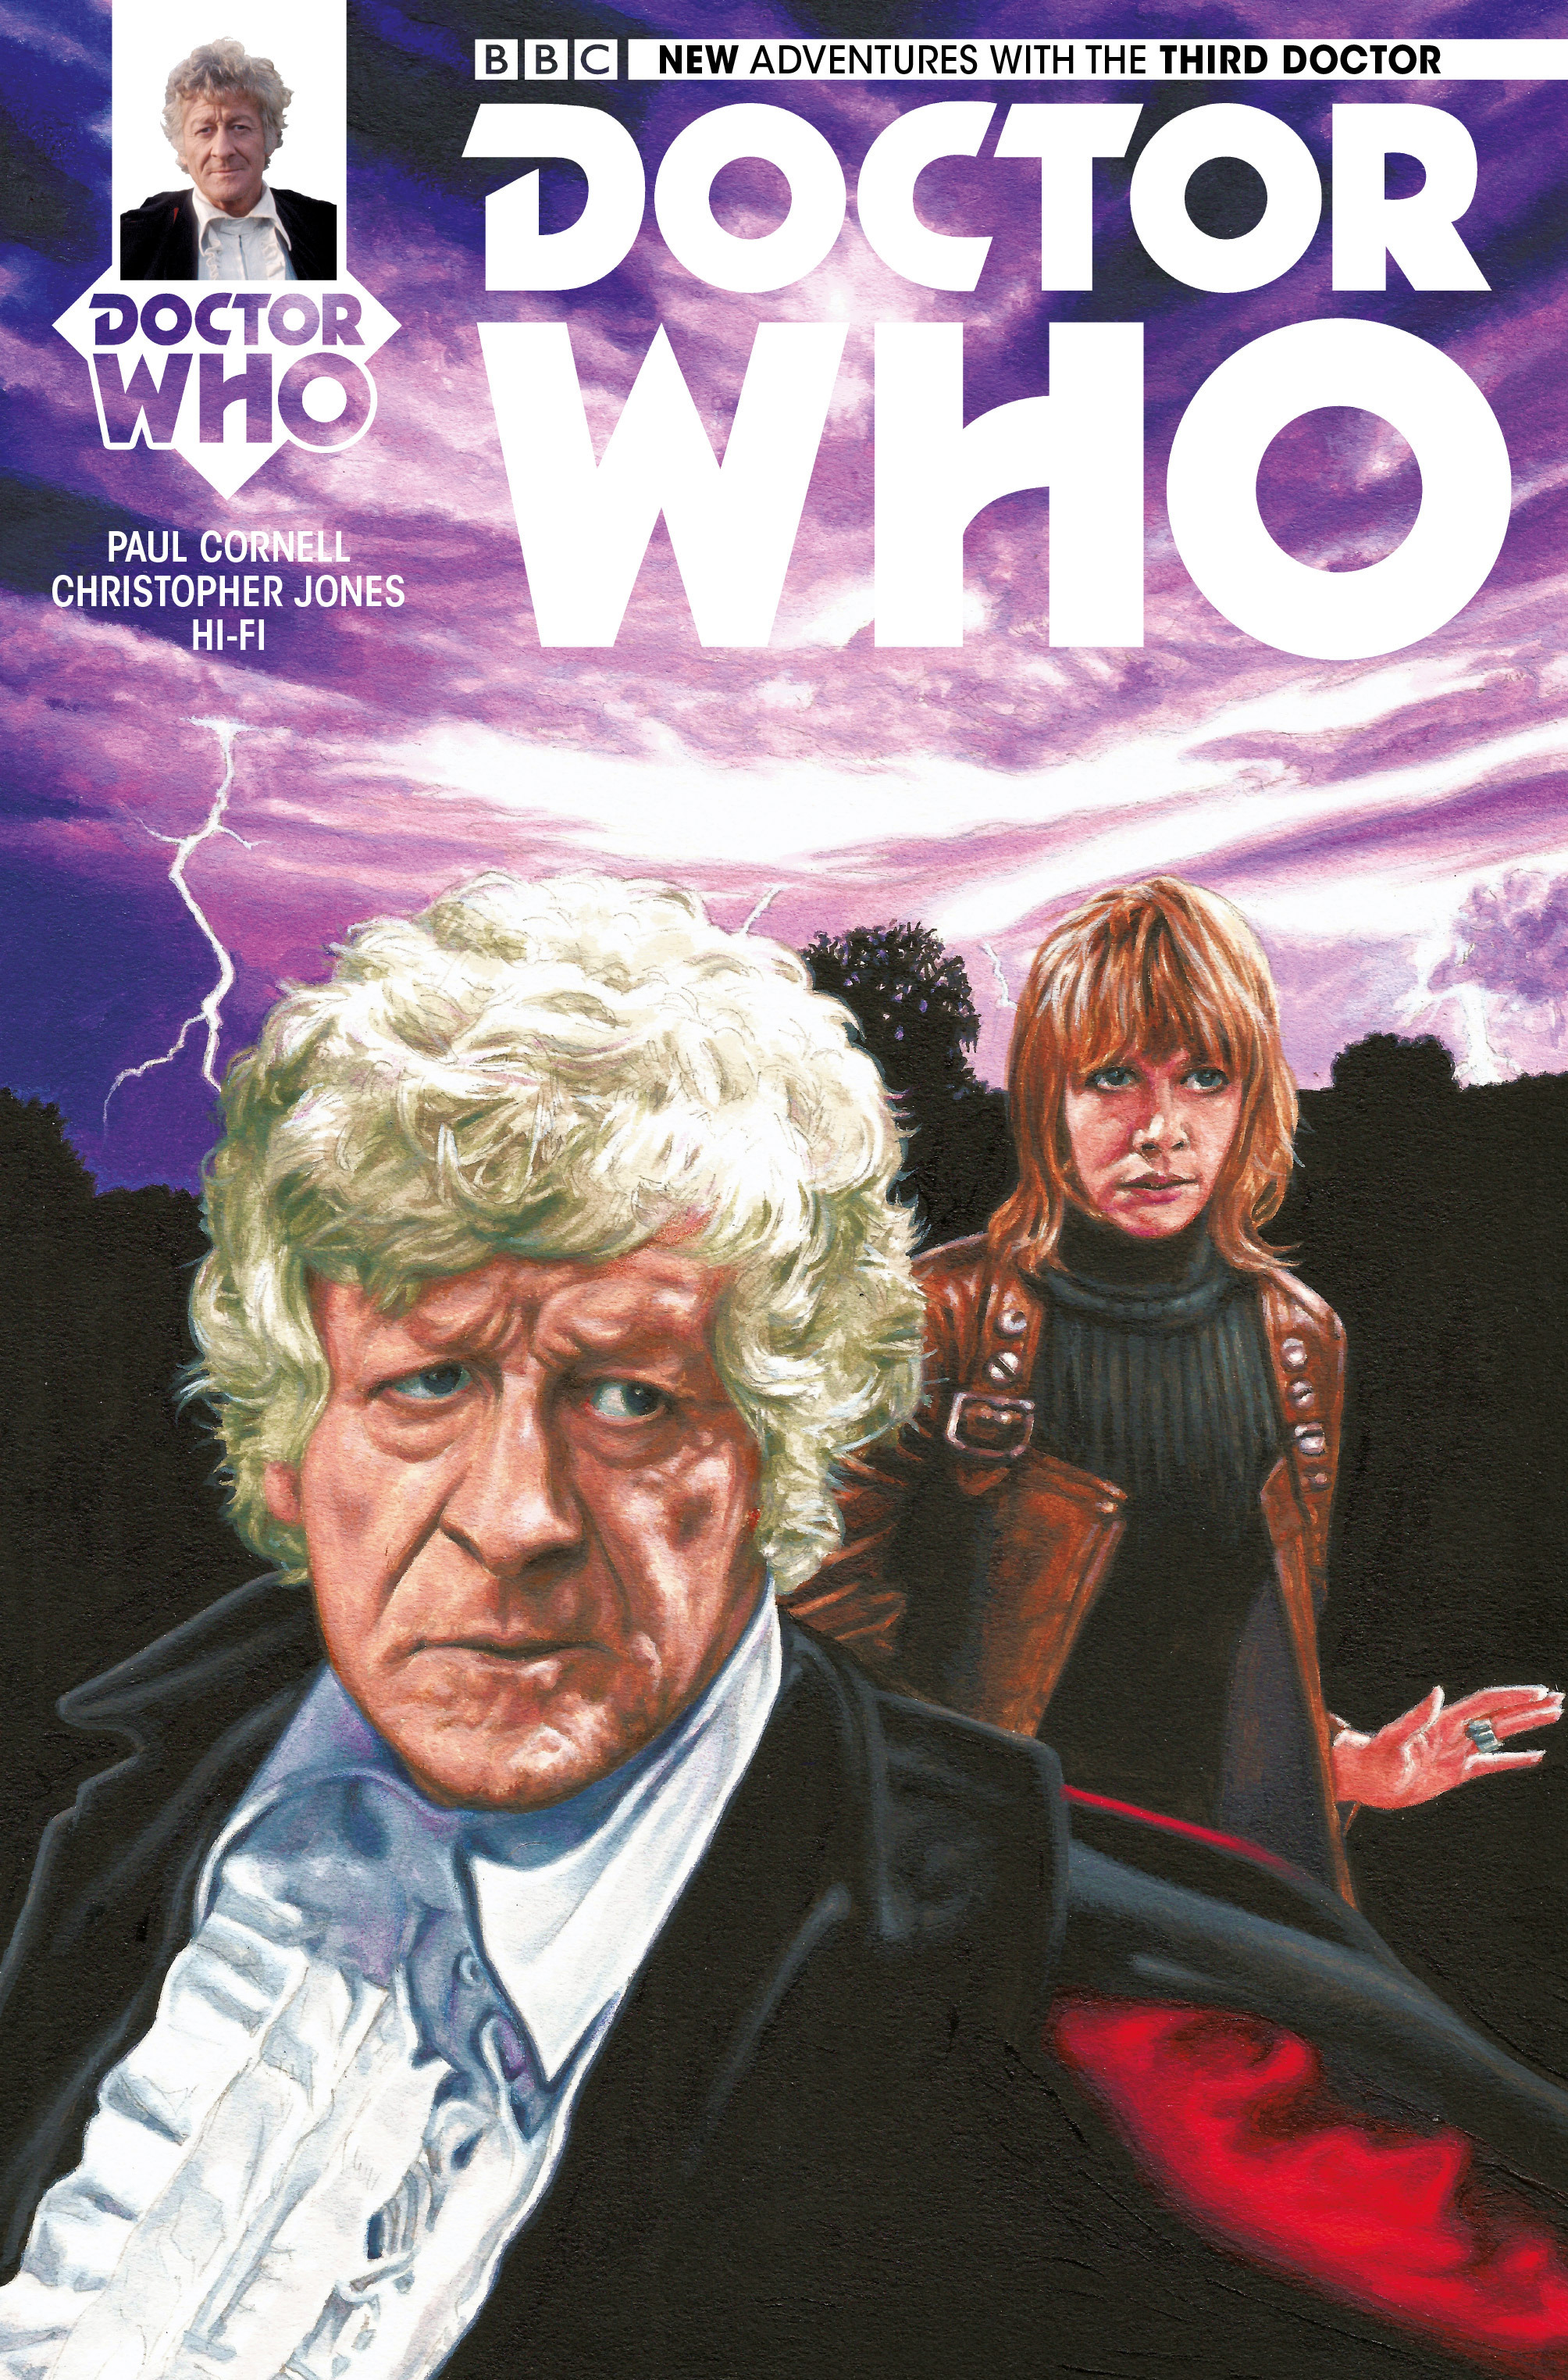 Doctor Who: The Third Doctor 4 Page 1